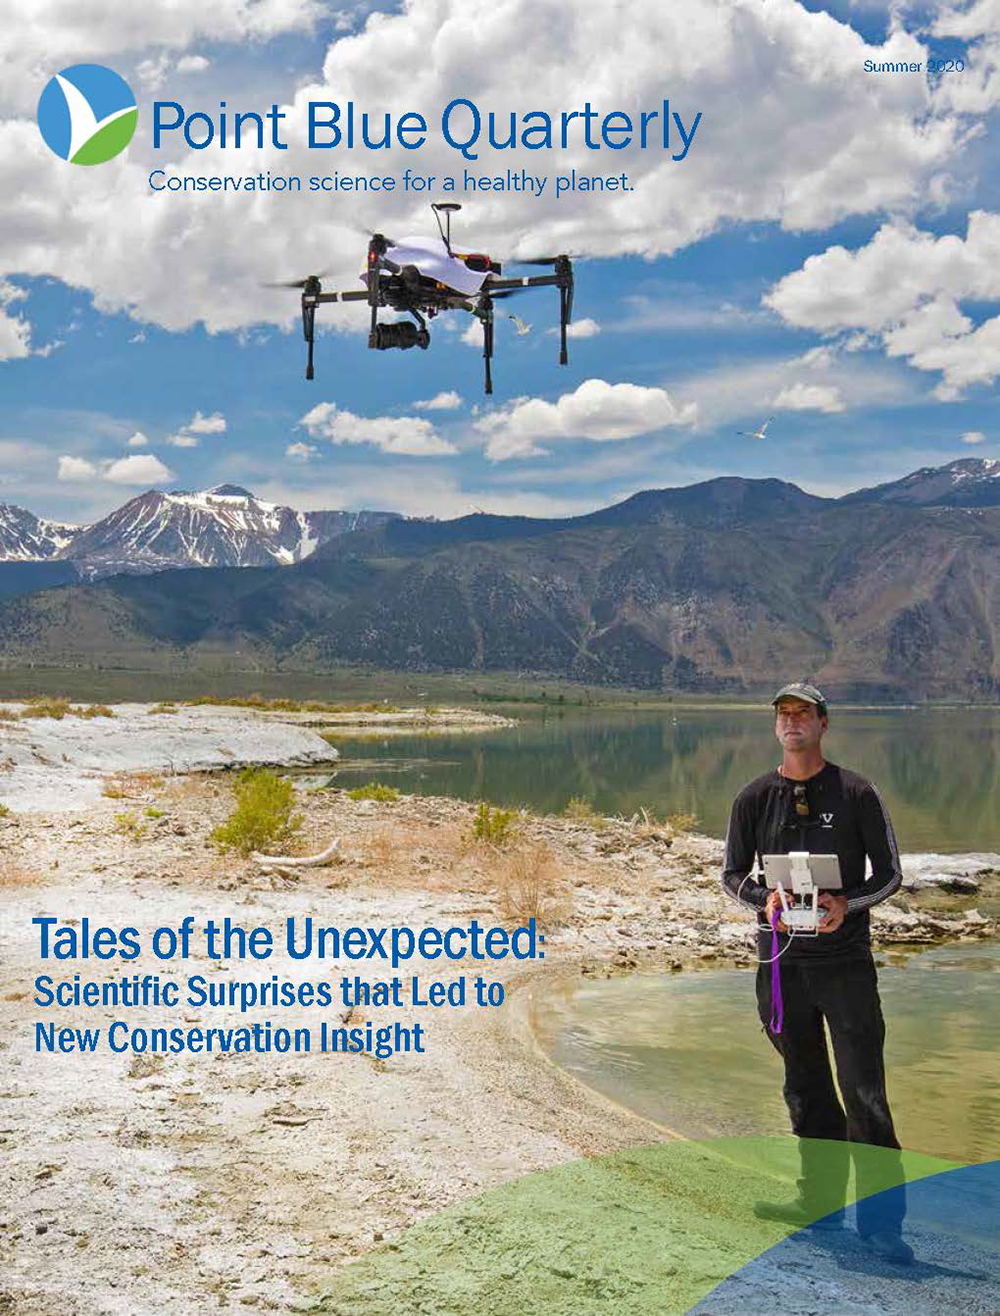 A poster for Blue Point Quarterly shows a drone flying above a man with the controls in his hands. He is standing on the shore of Mono Lake, and the green water is still, with the Sierra Nevadas in the background.